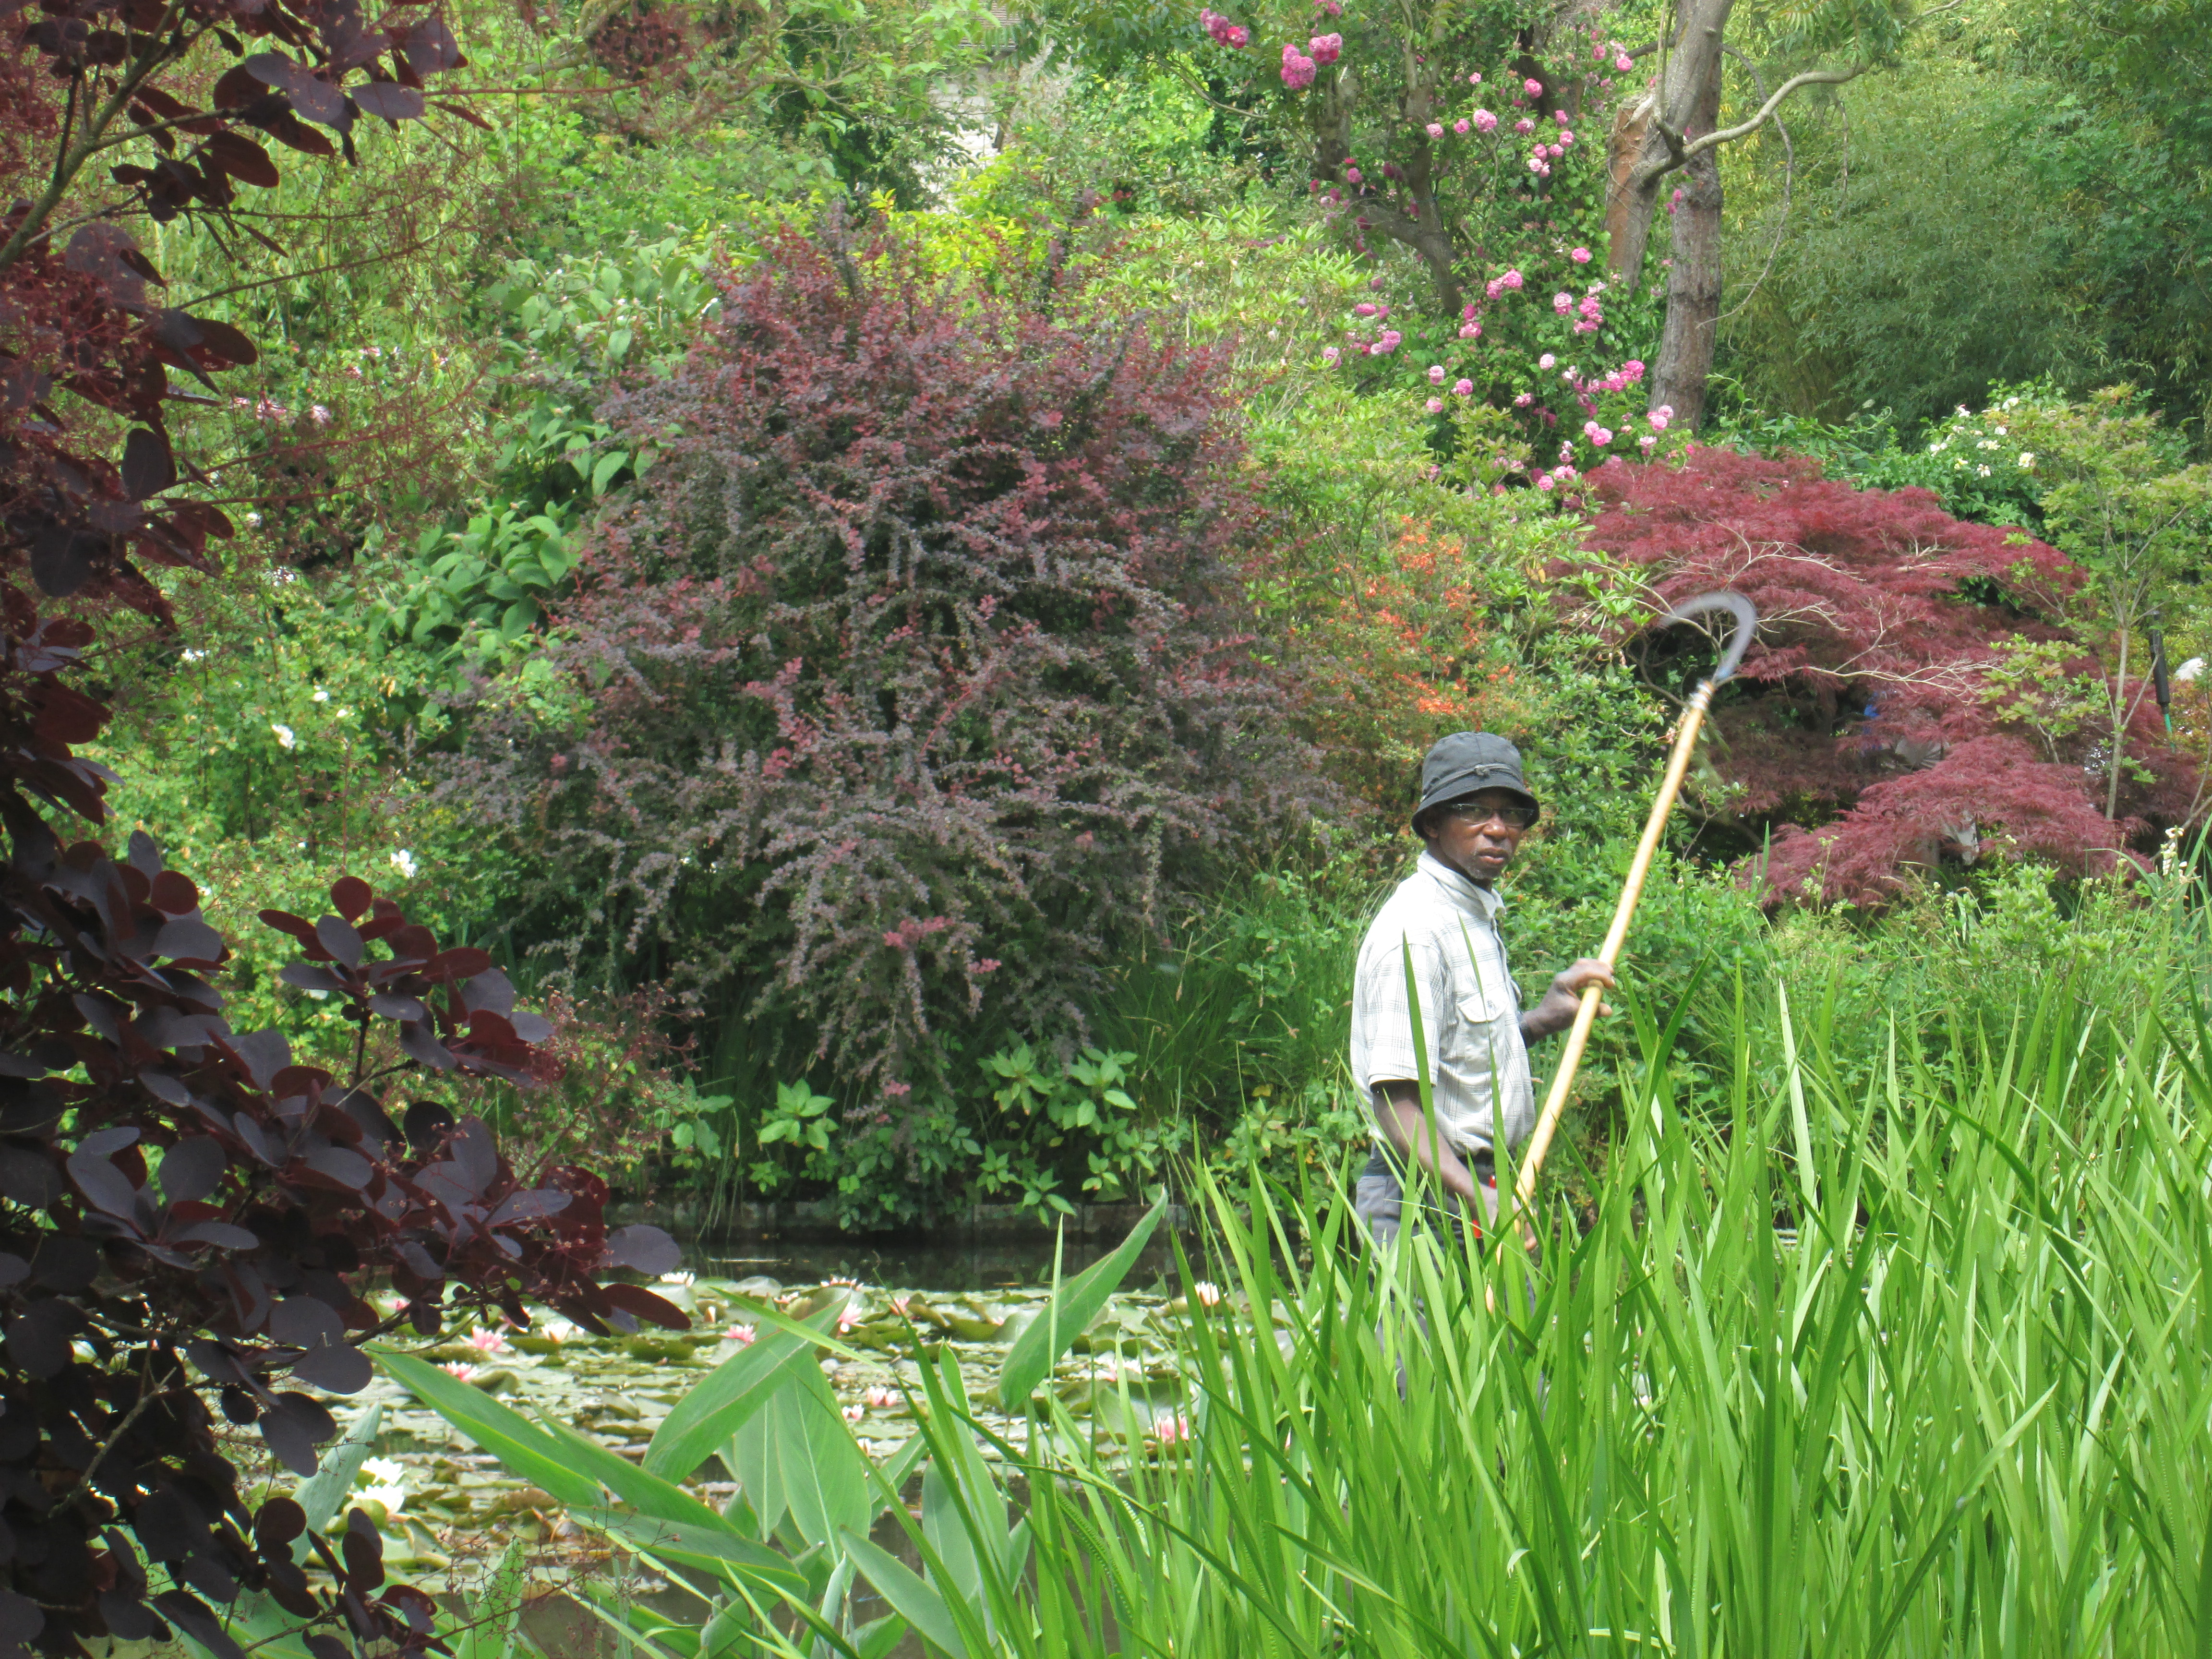 Cleaning the Lily Pond at Monet's house